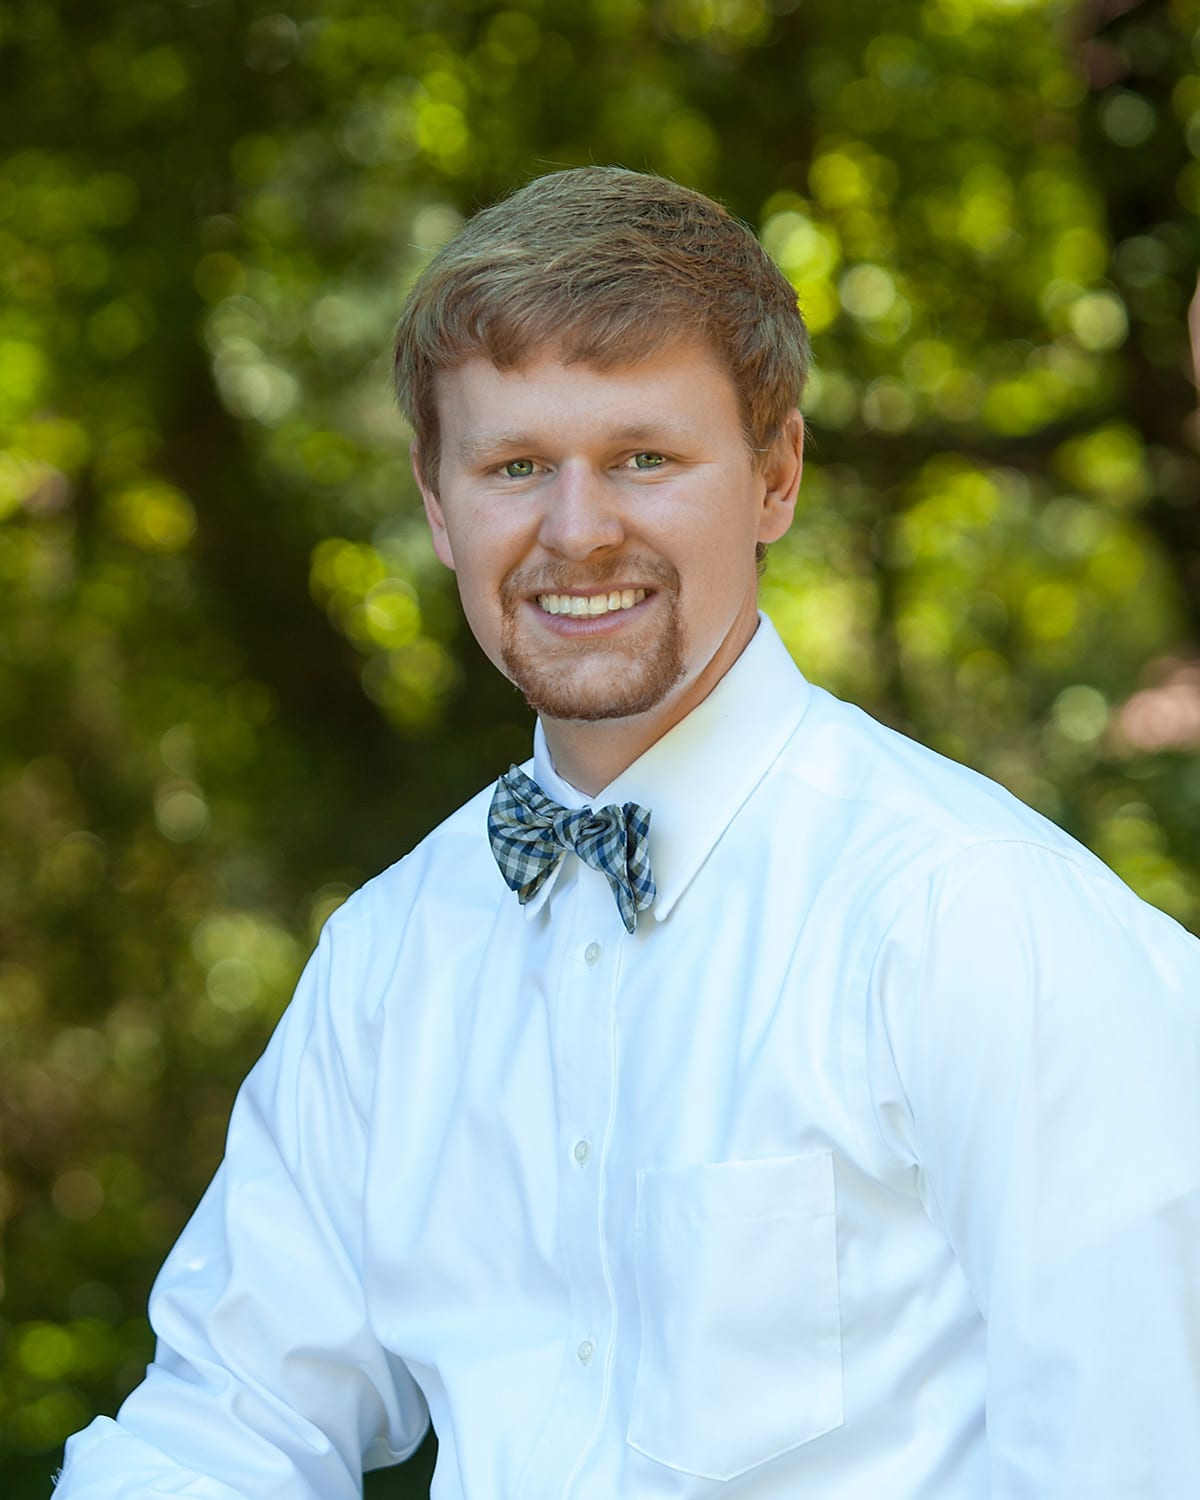 Image: Dr. Devin Callaway - Lail Family Dentistry, Duluth GA